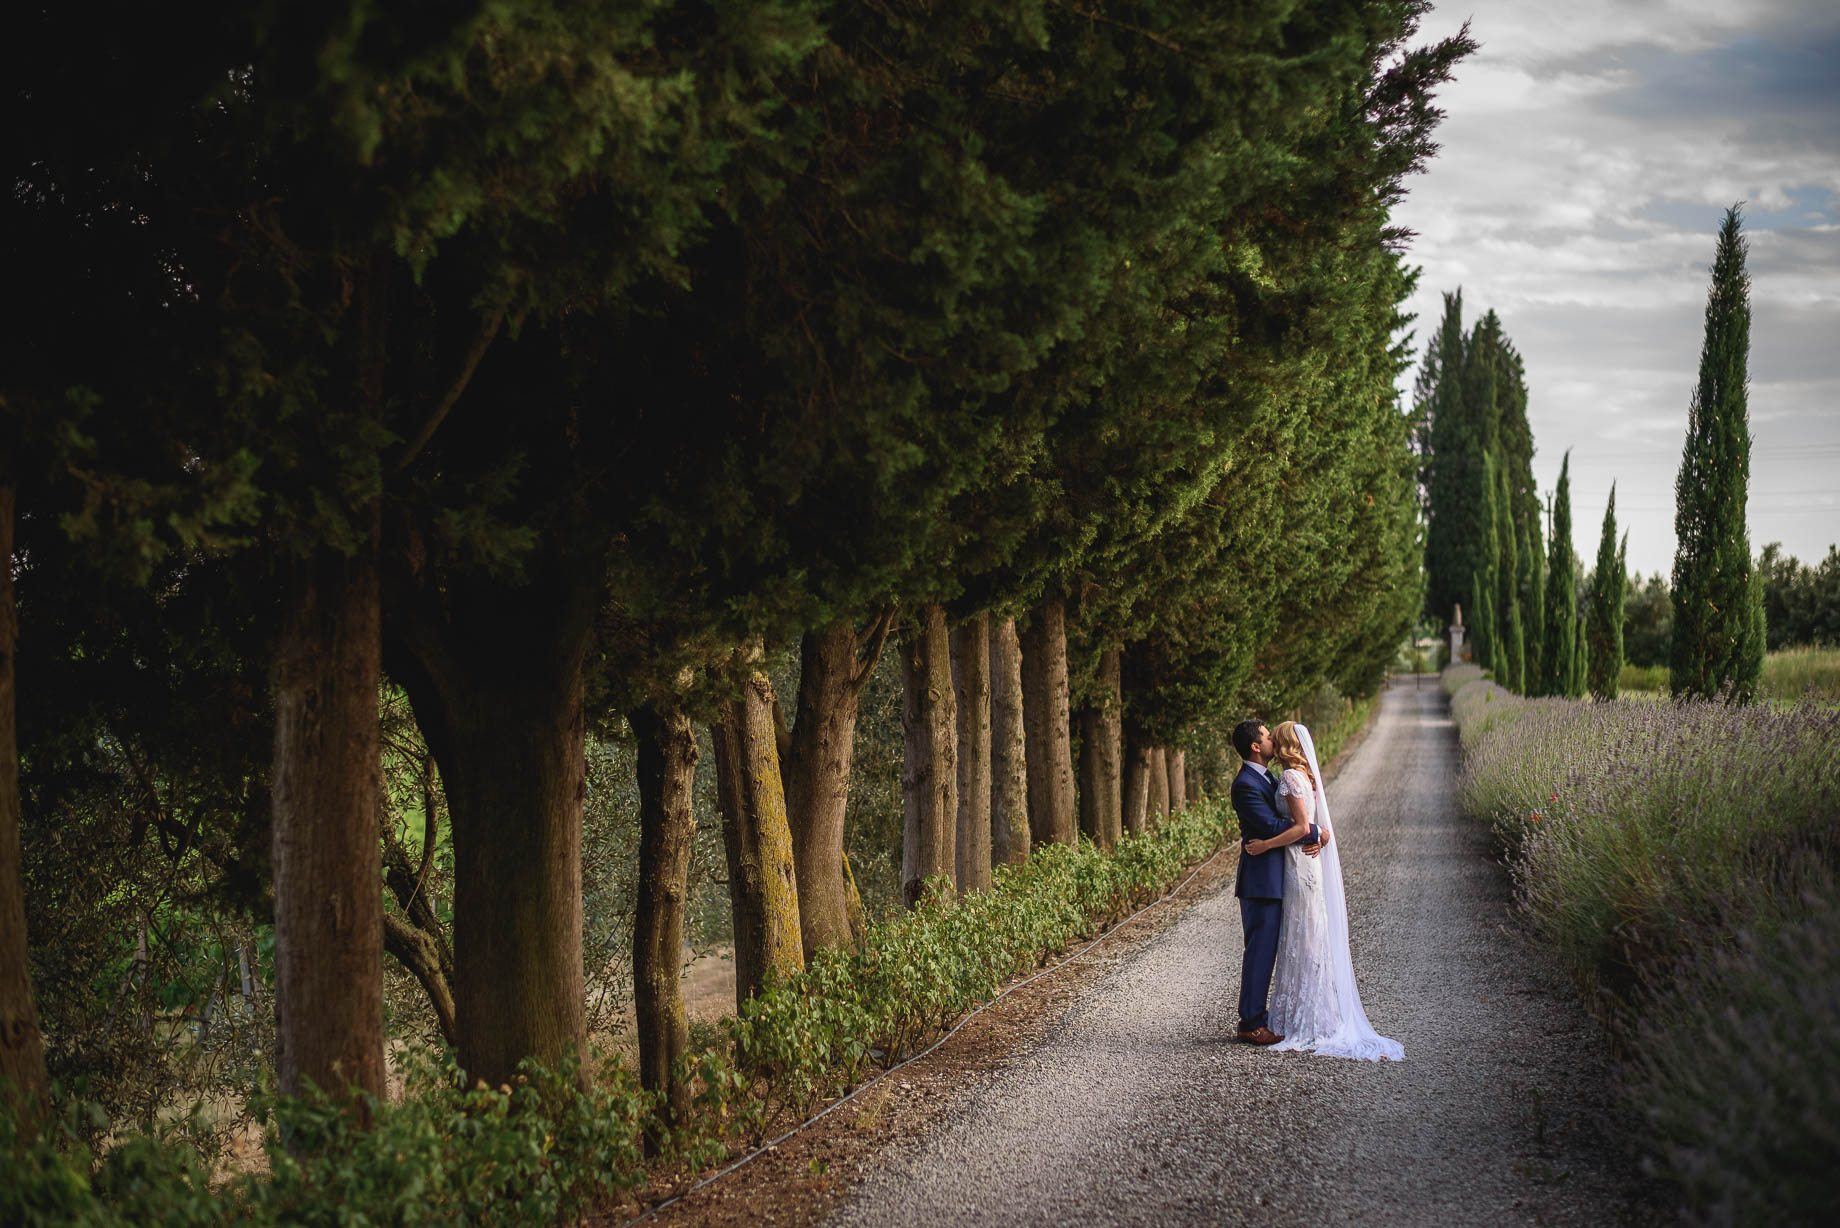 Tuscany wedding photography - Roisin and Moubin - Guy Collier Photography (144 of 251)